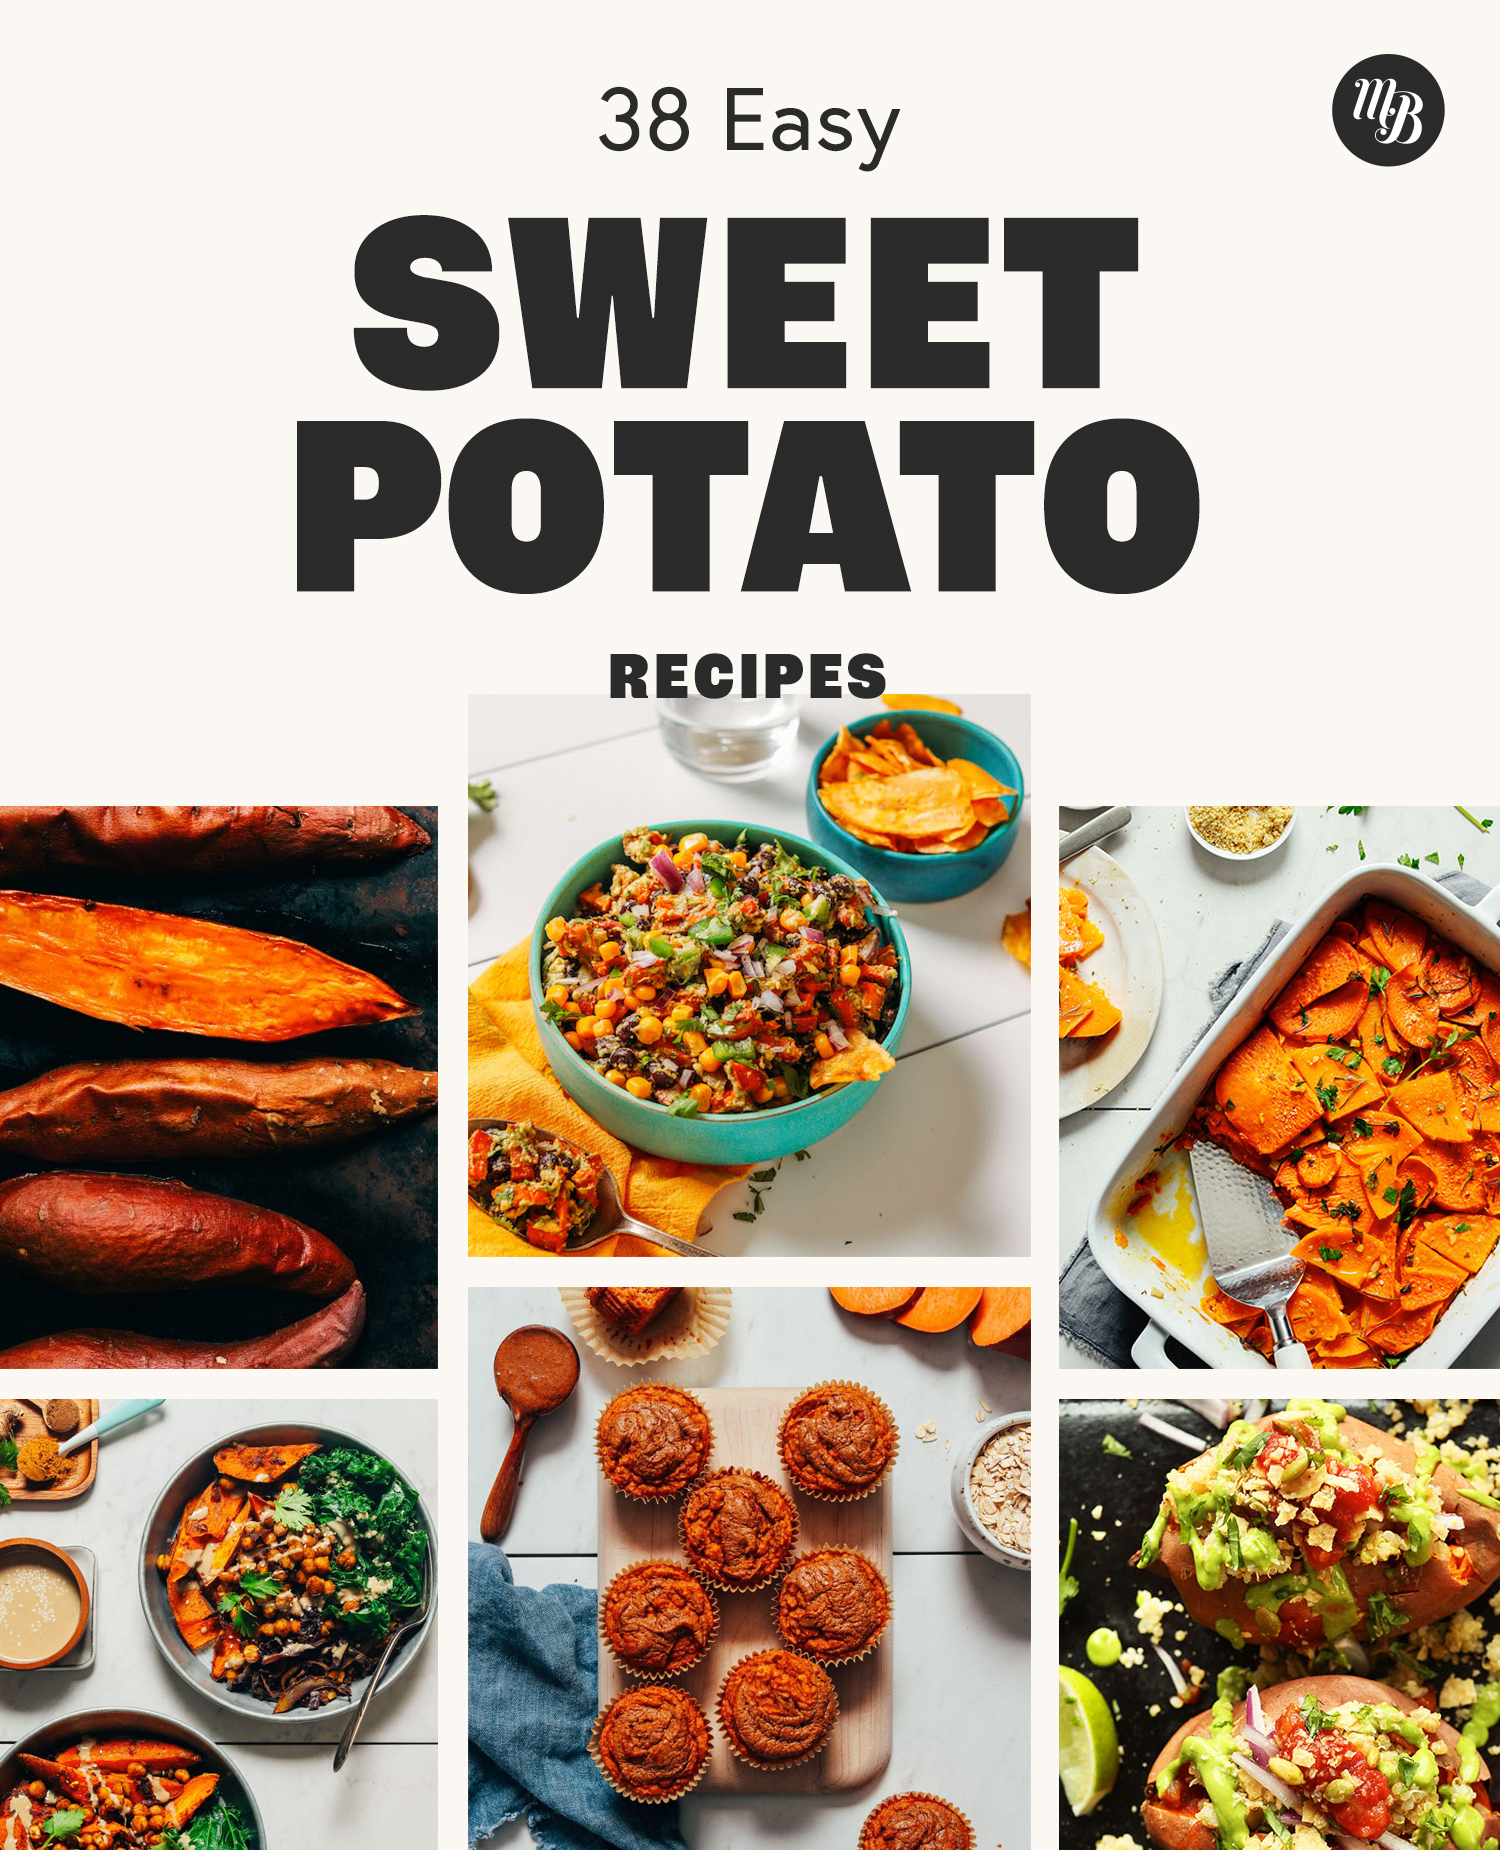 Roasted sweet potatoes, sweet potato dip, and other easy sweet potato recipes